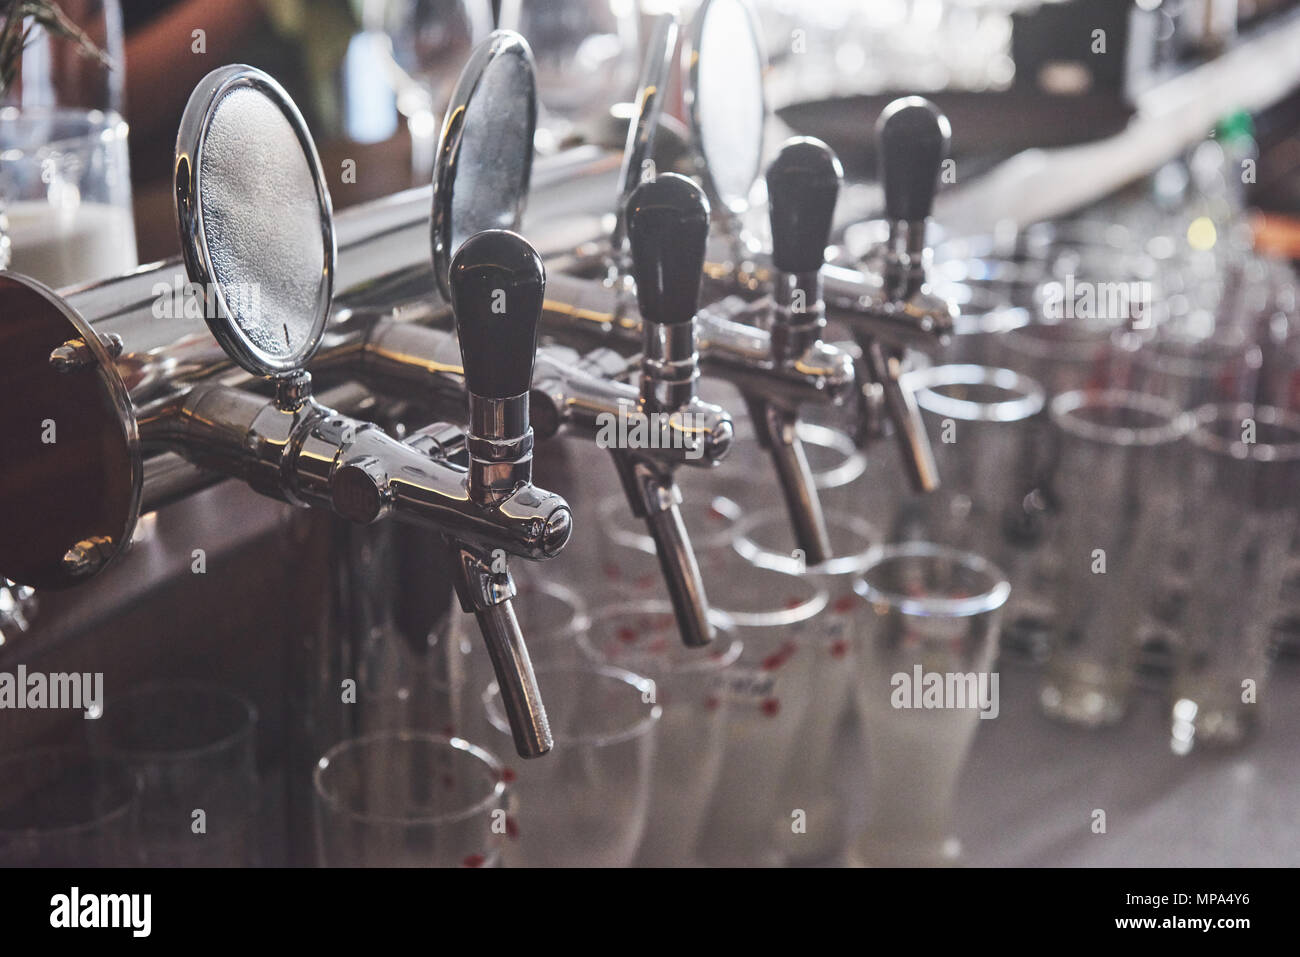 ready to pint of beer on a bar in a traditional style wooden pub - Stock Image